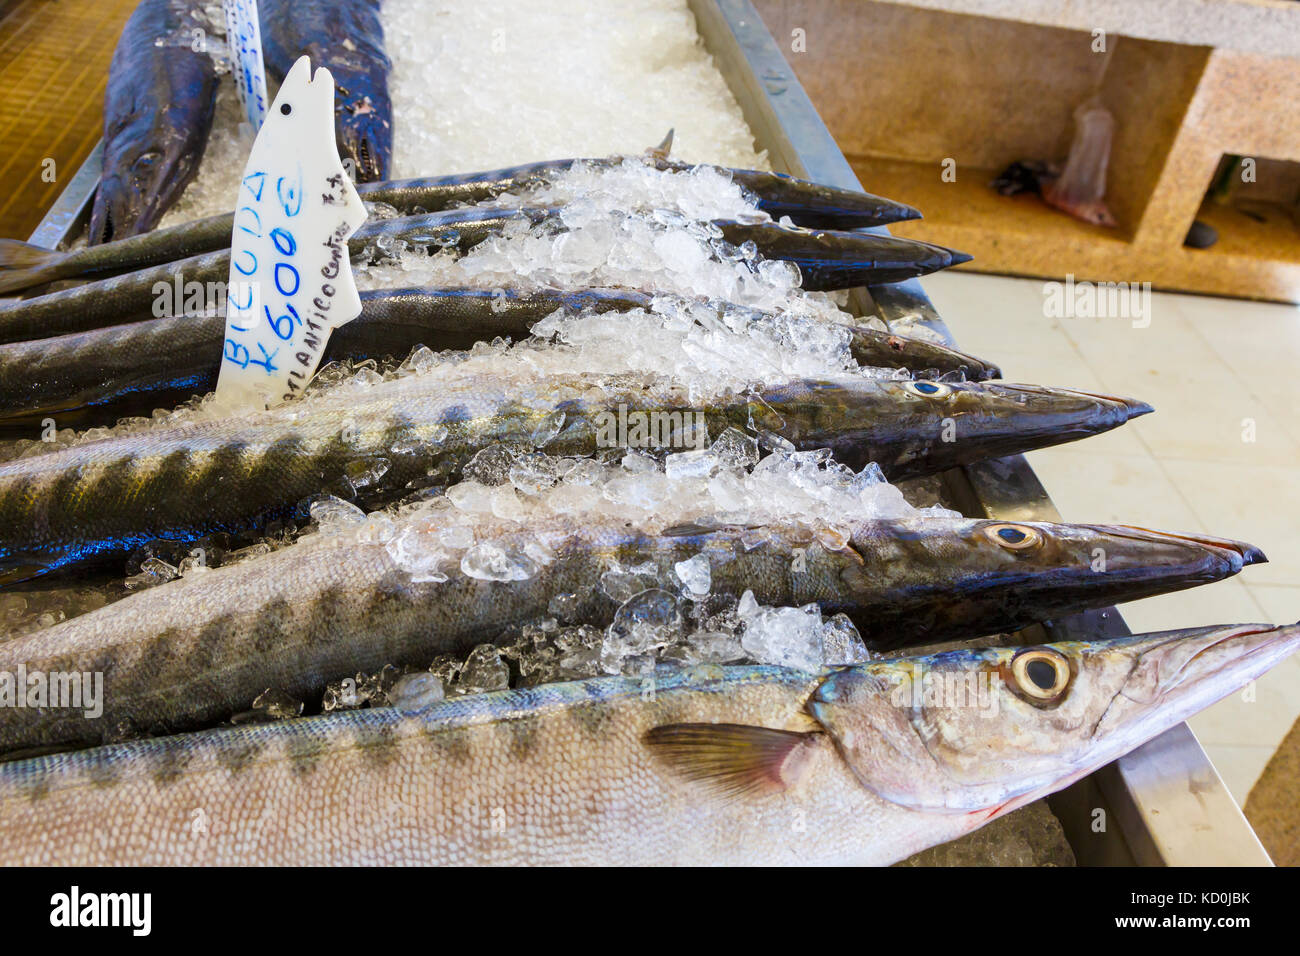 Fishes in a fish market. - Stock Image